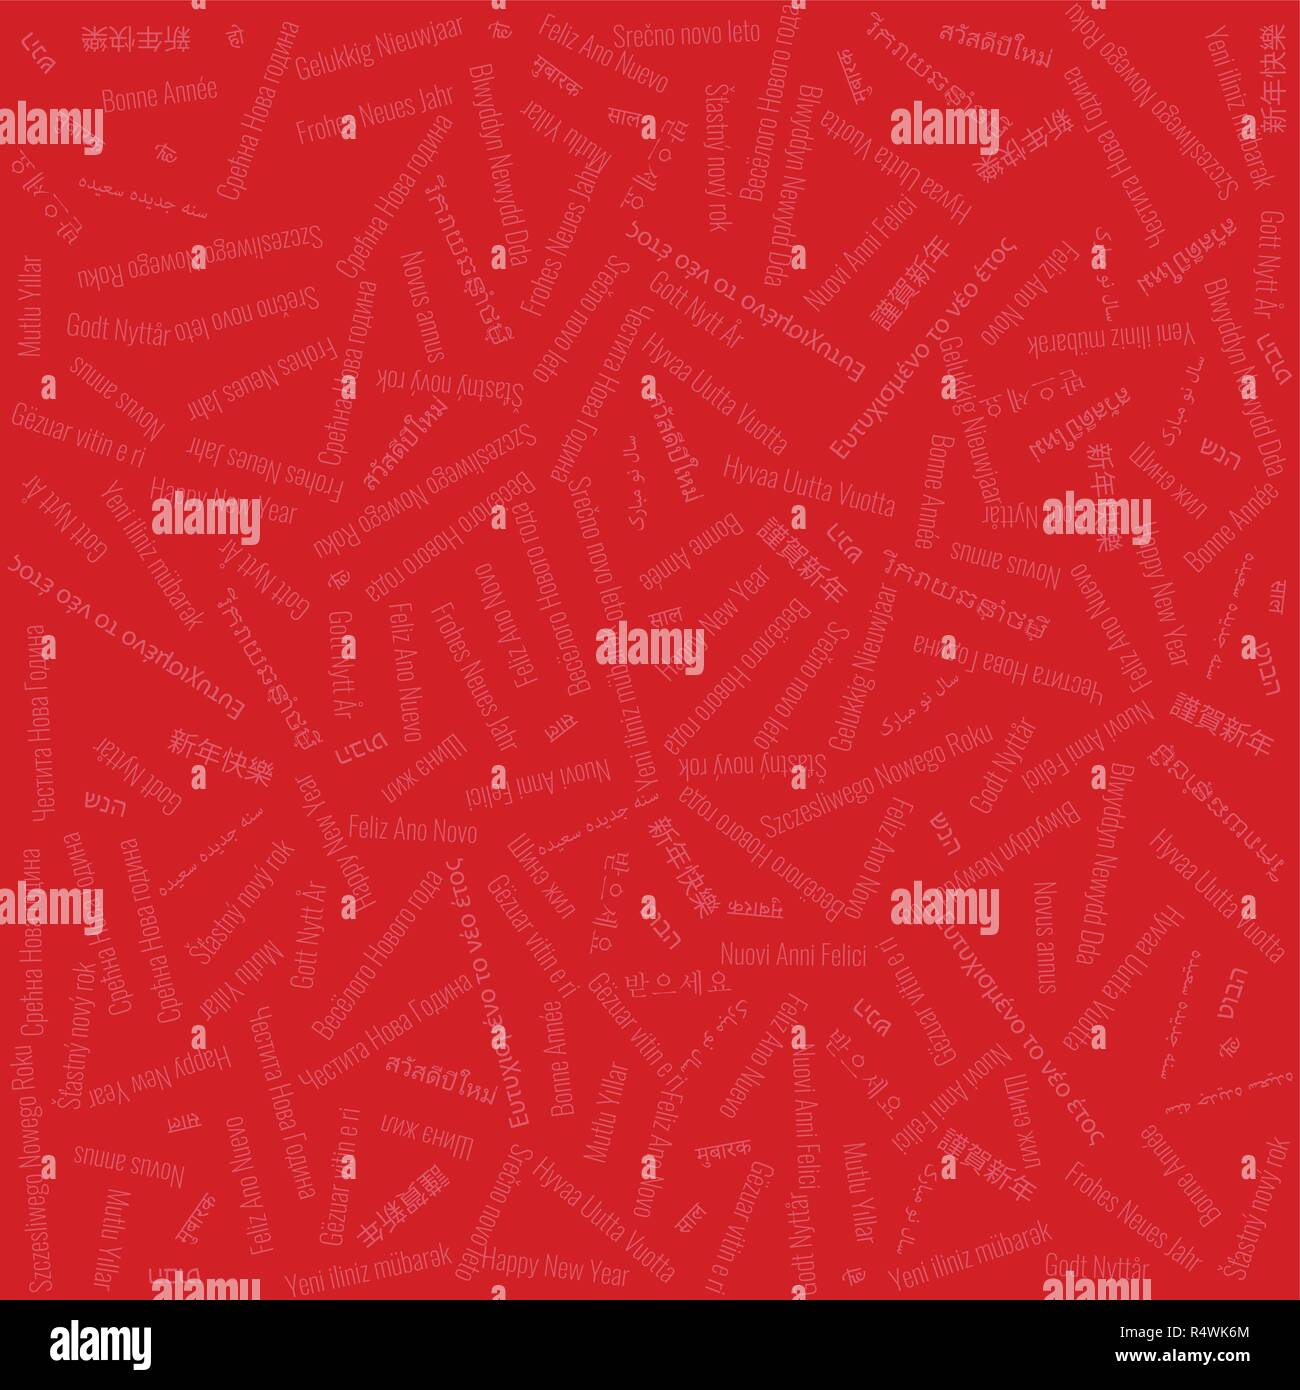 Christmas & New Year Themed Background Tile Contains Jumbled 'Happy New Year' Text in Many Different Languages on Red Background - Stock Image